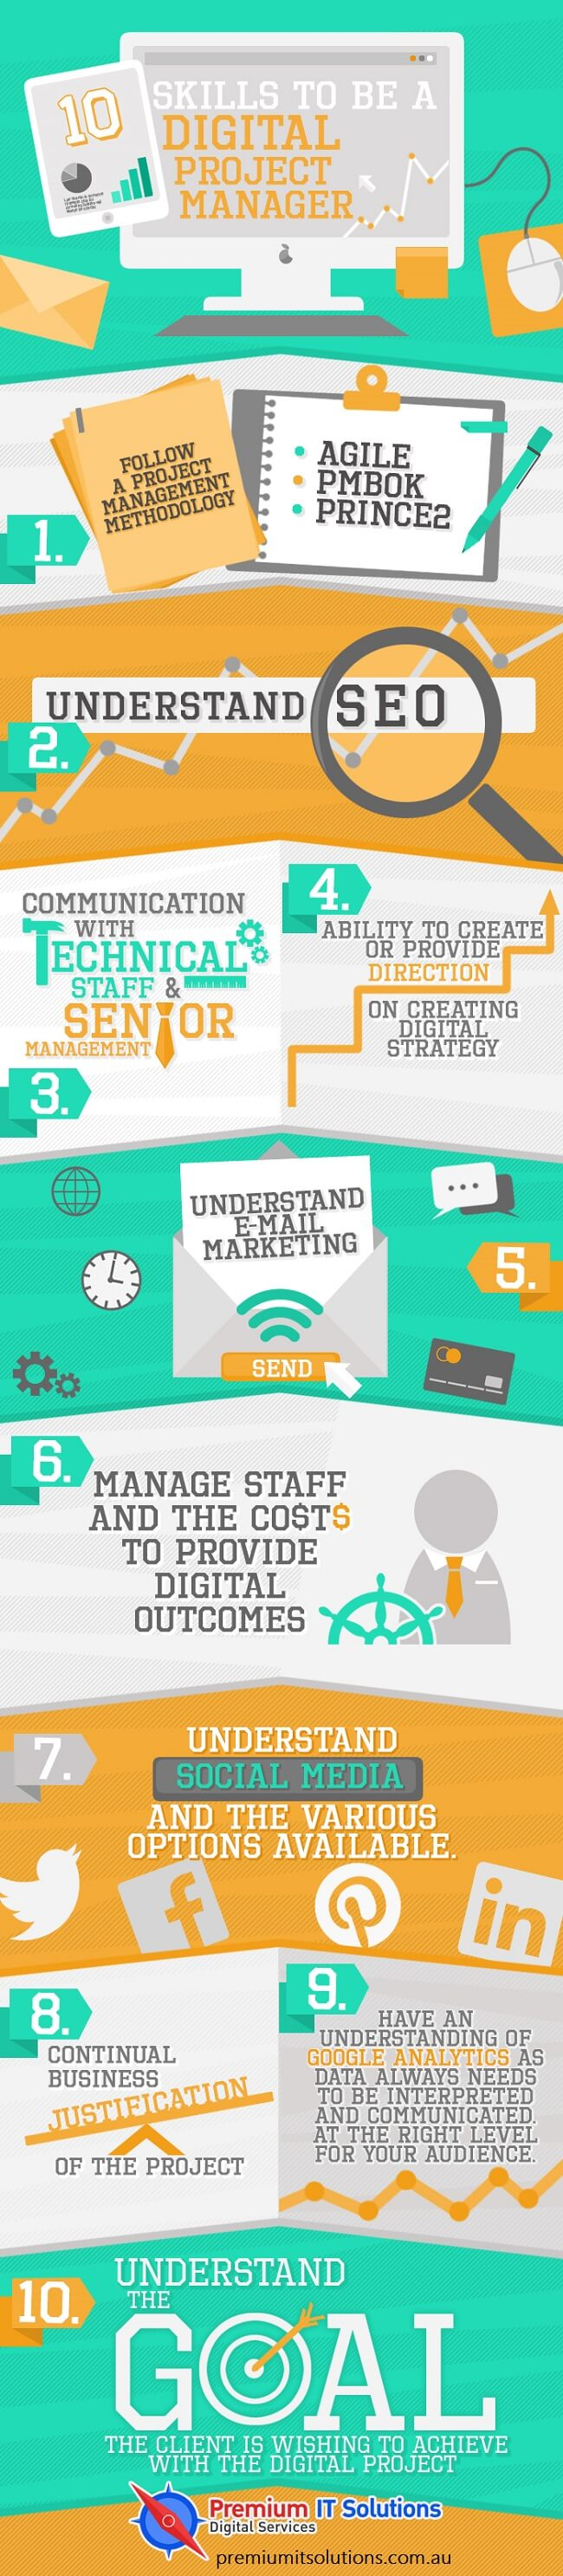 digital-project-manager-infographic